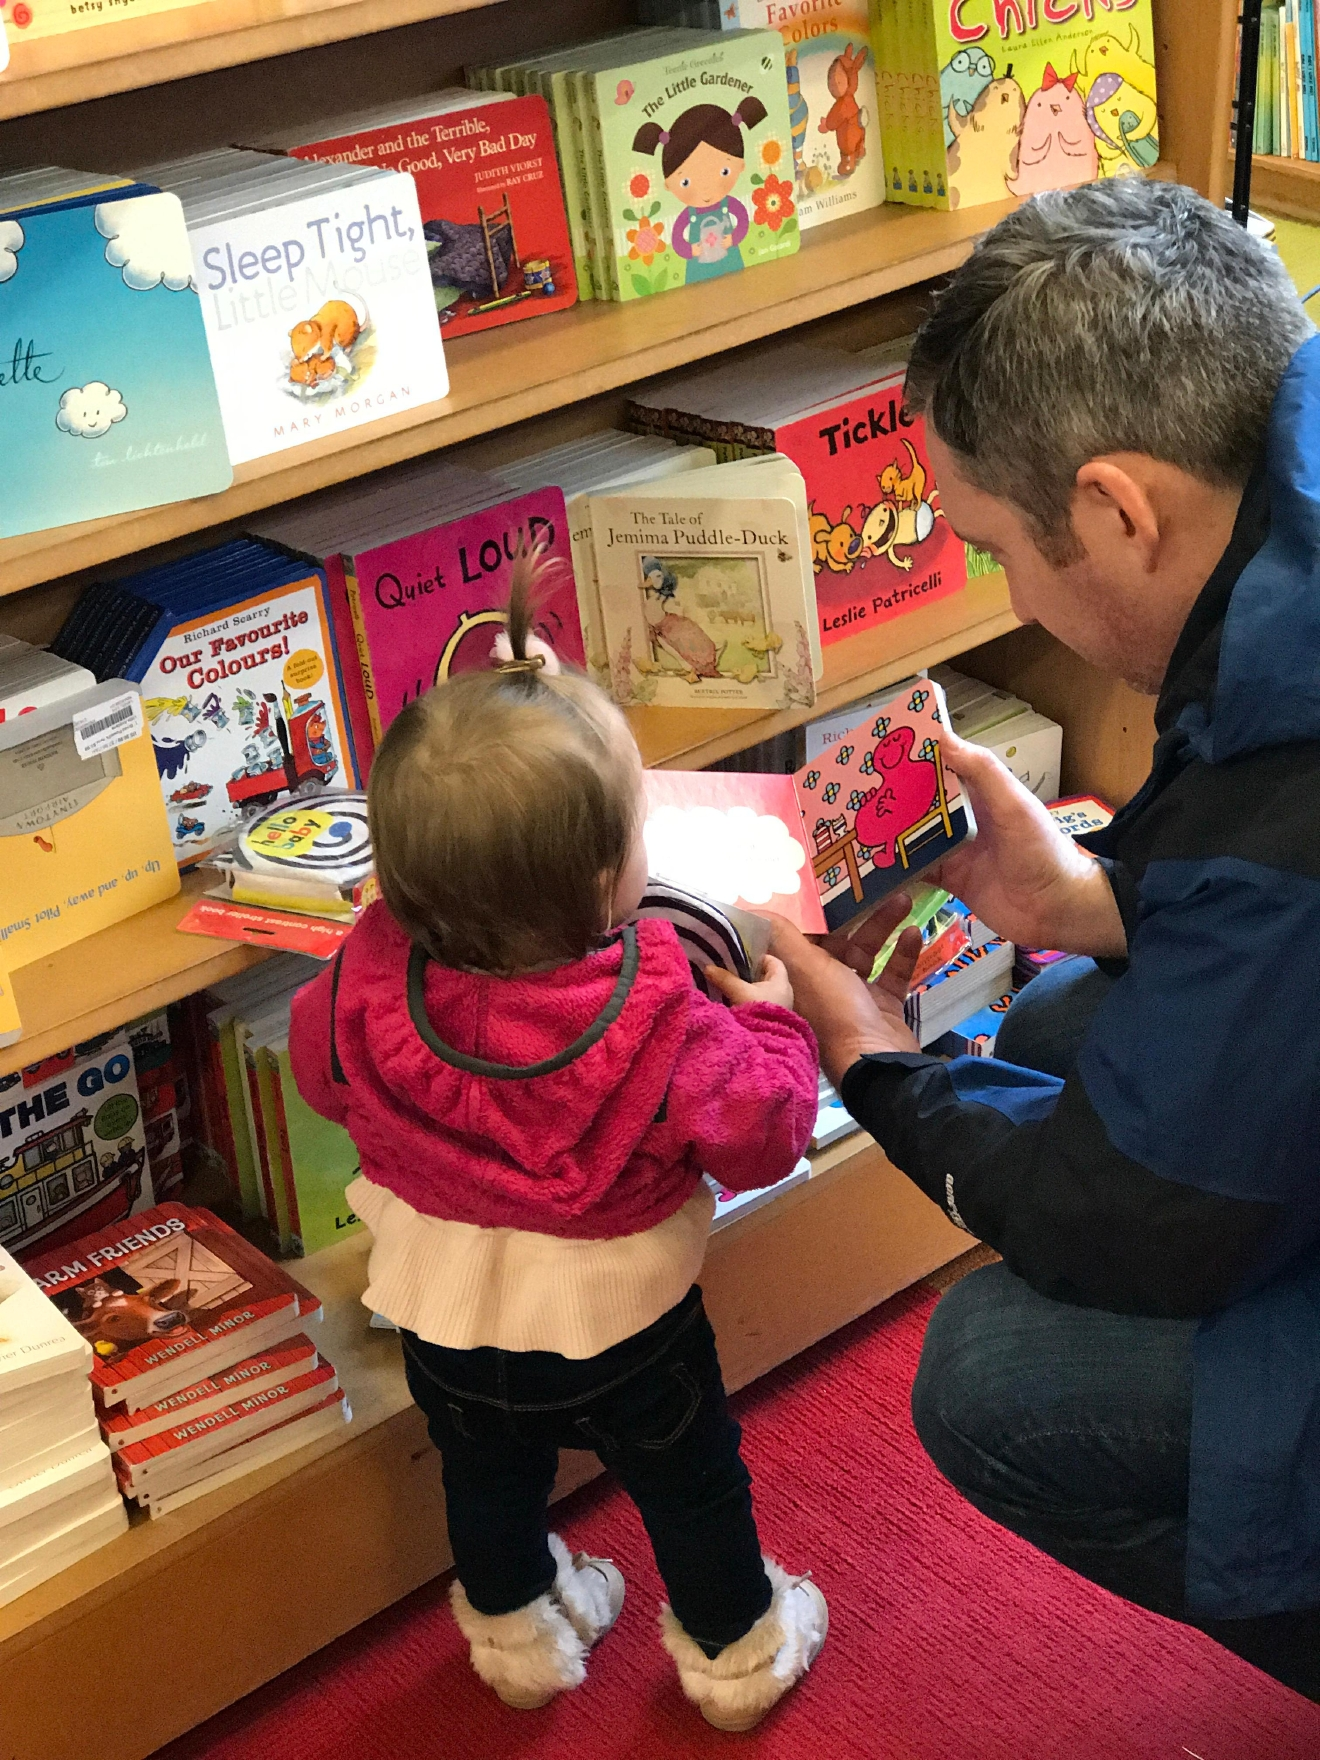 Explore the kids area at Powell City of Books, our Junie loved it!                                          (Image: Kate Neidigh)